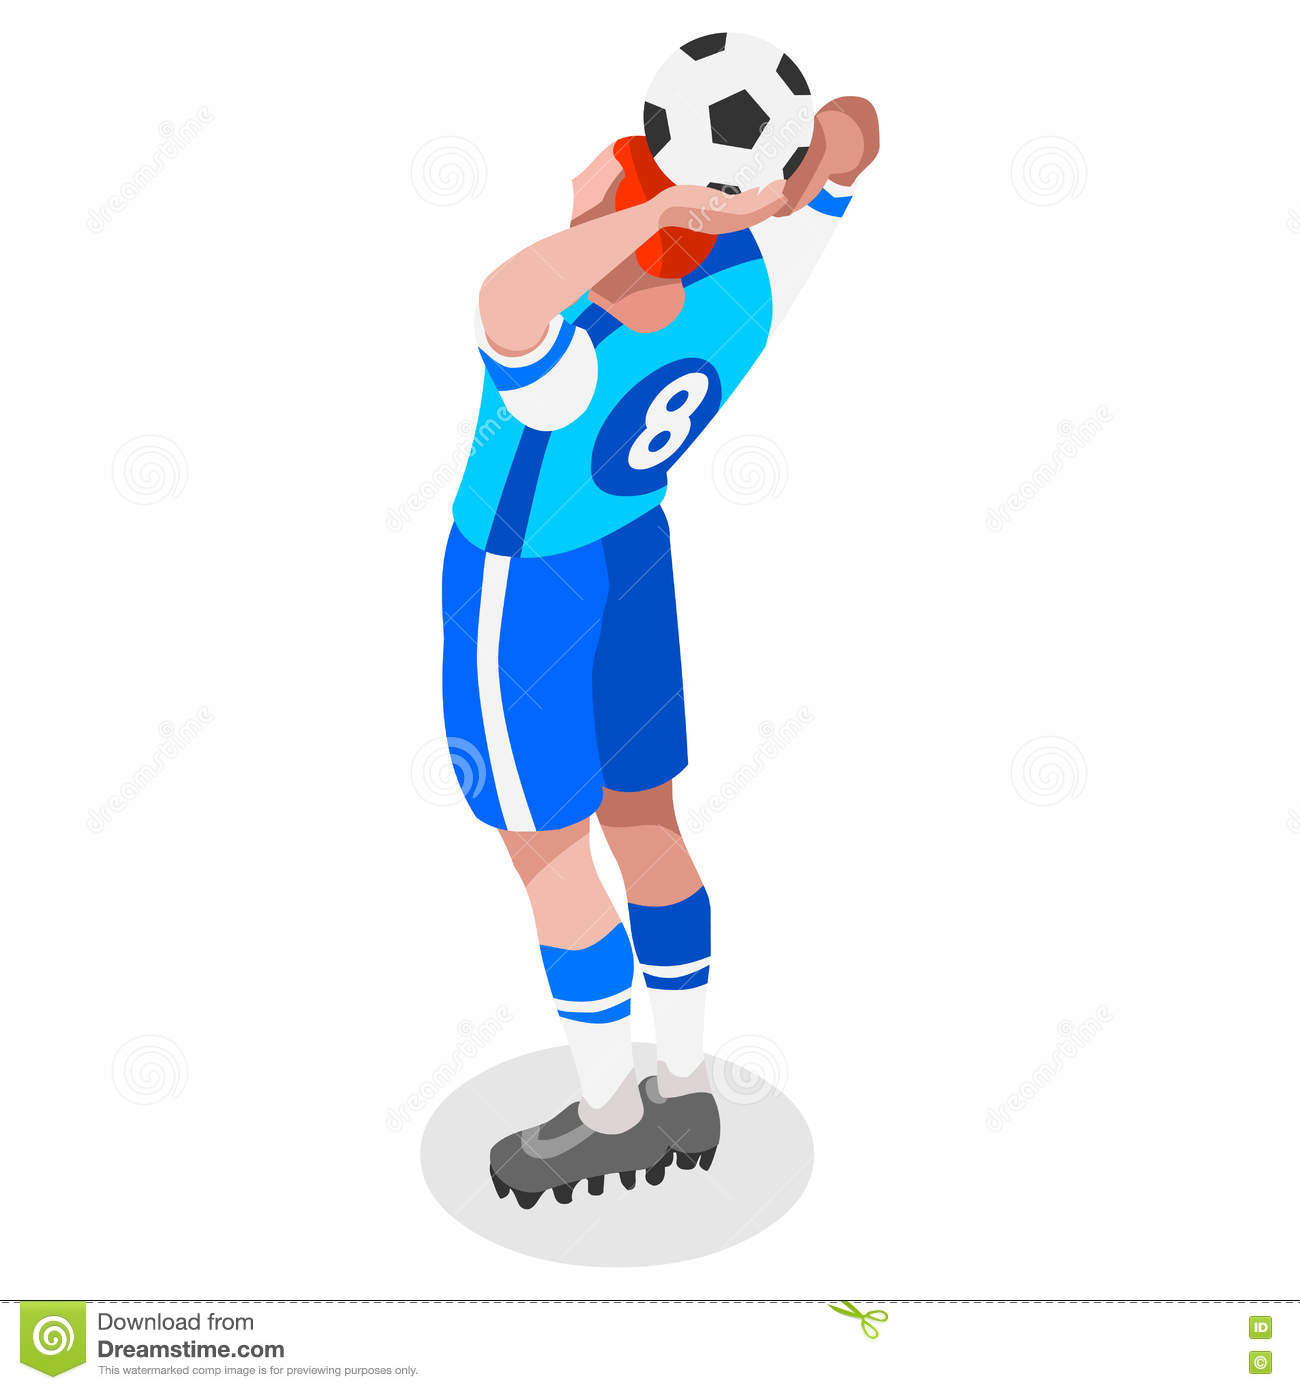 soccer throw player athlete sports icon set 3d isometric field rh dreamstime com Olympic Jump Rope Olympic Jump Rope